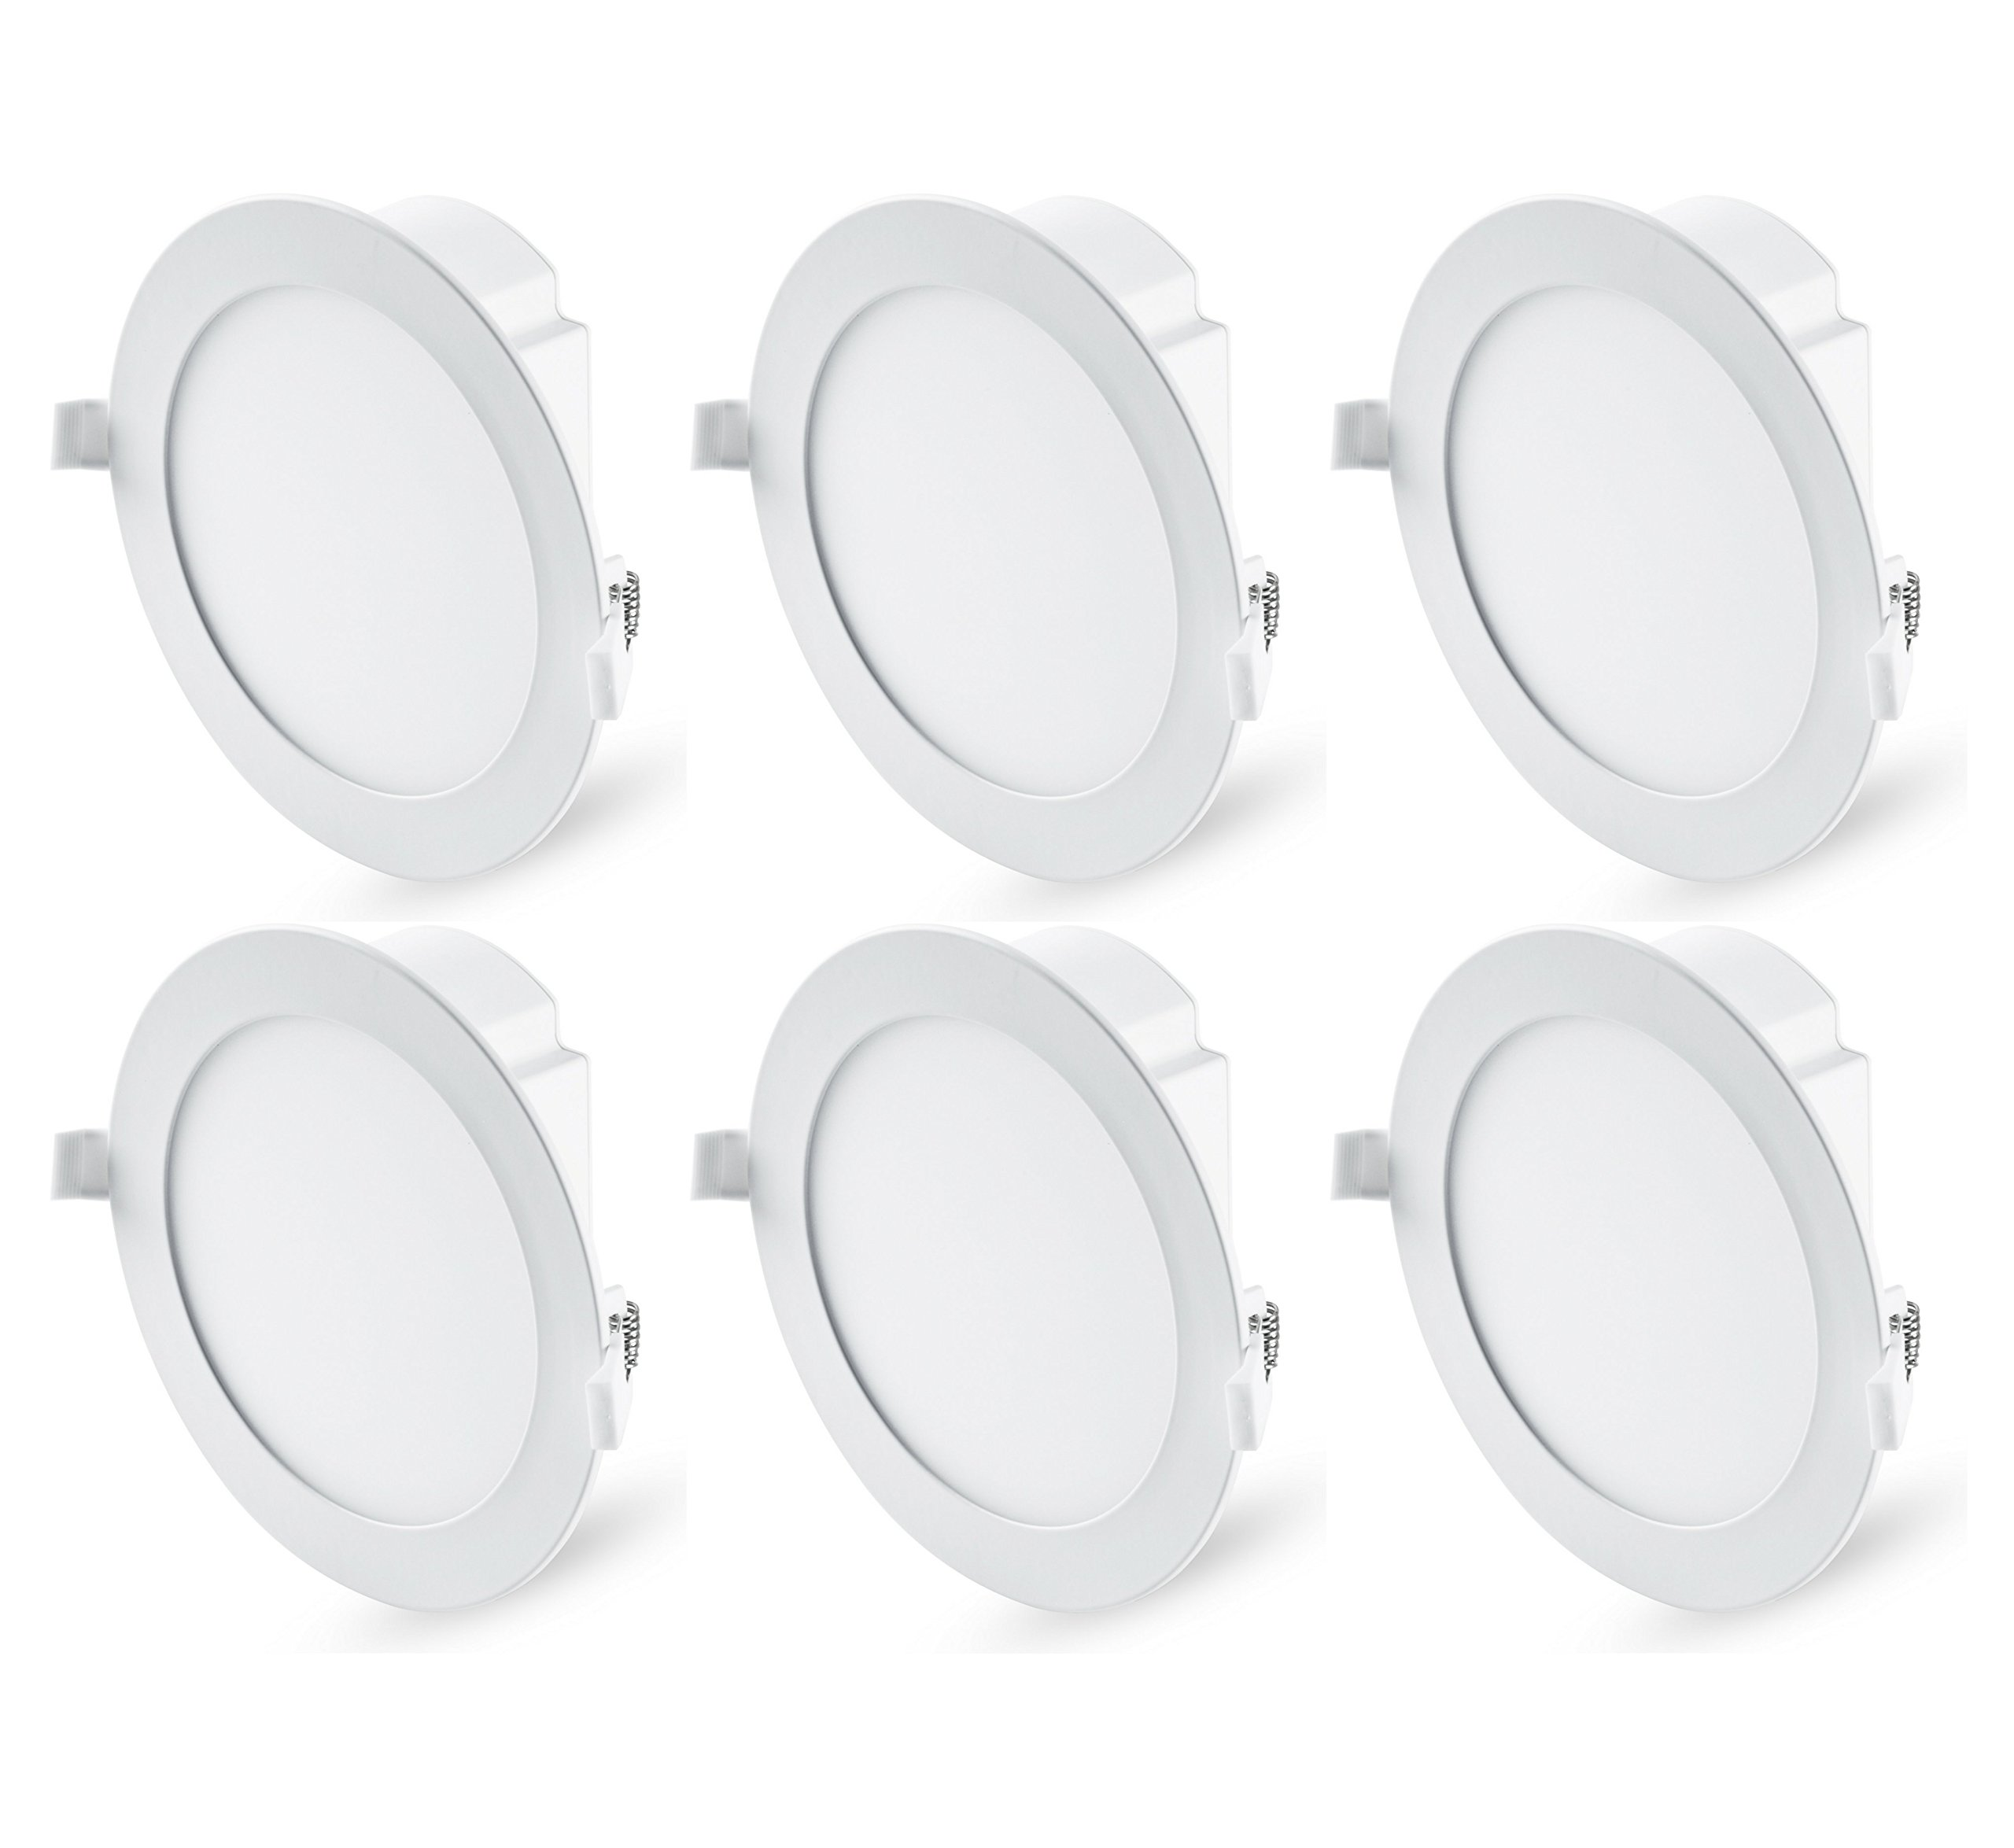 Hyperikon 6 Inch LED Recessed Lights with Junction Box, 65 Watt (11.6W), Dimmable Downlight, 4000K Daylight, 6 Pack